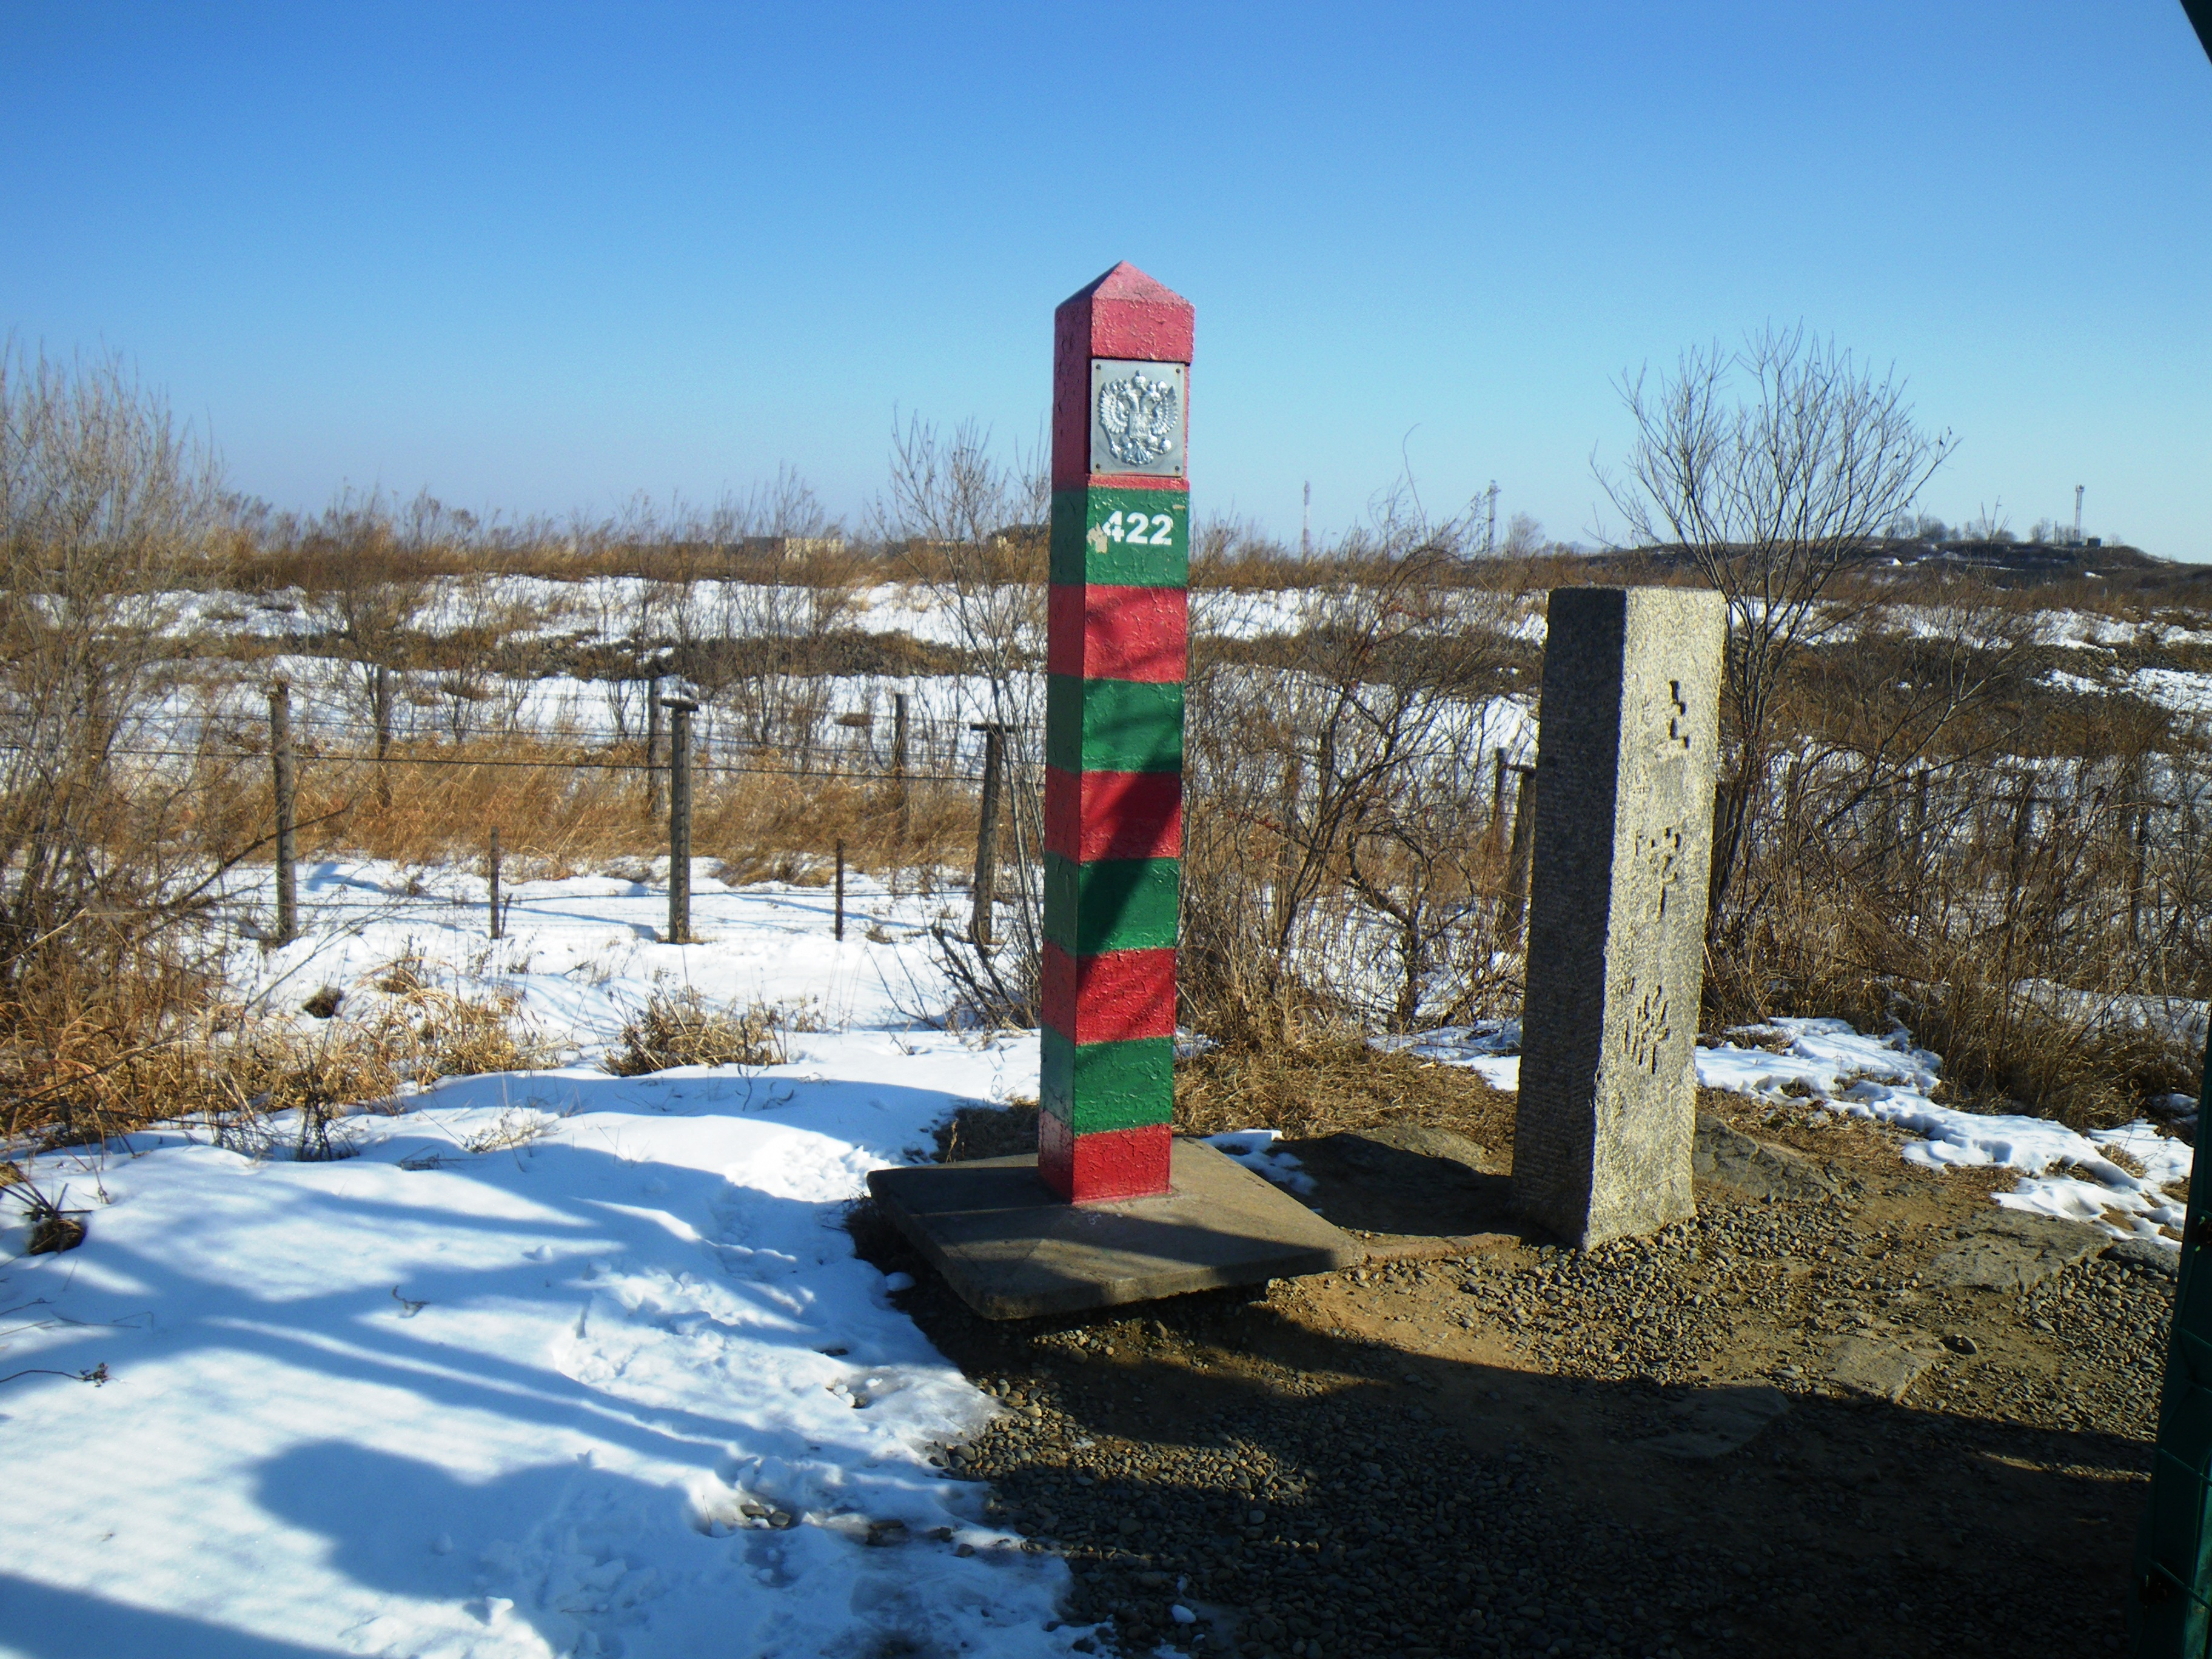 marker at the russia border convergence erected published 10 2012 at 3648 atilde151 2736 in